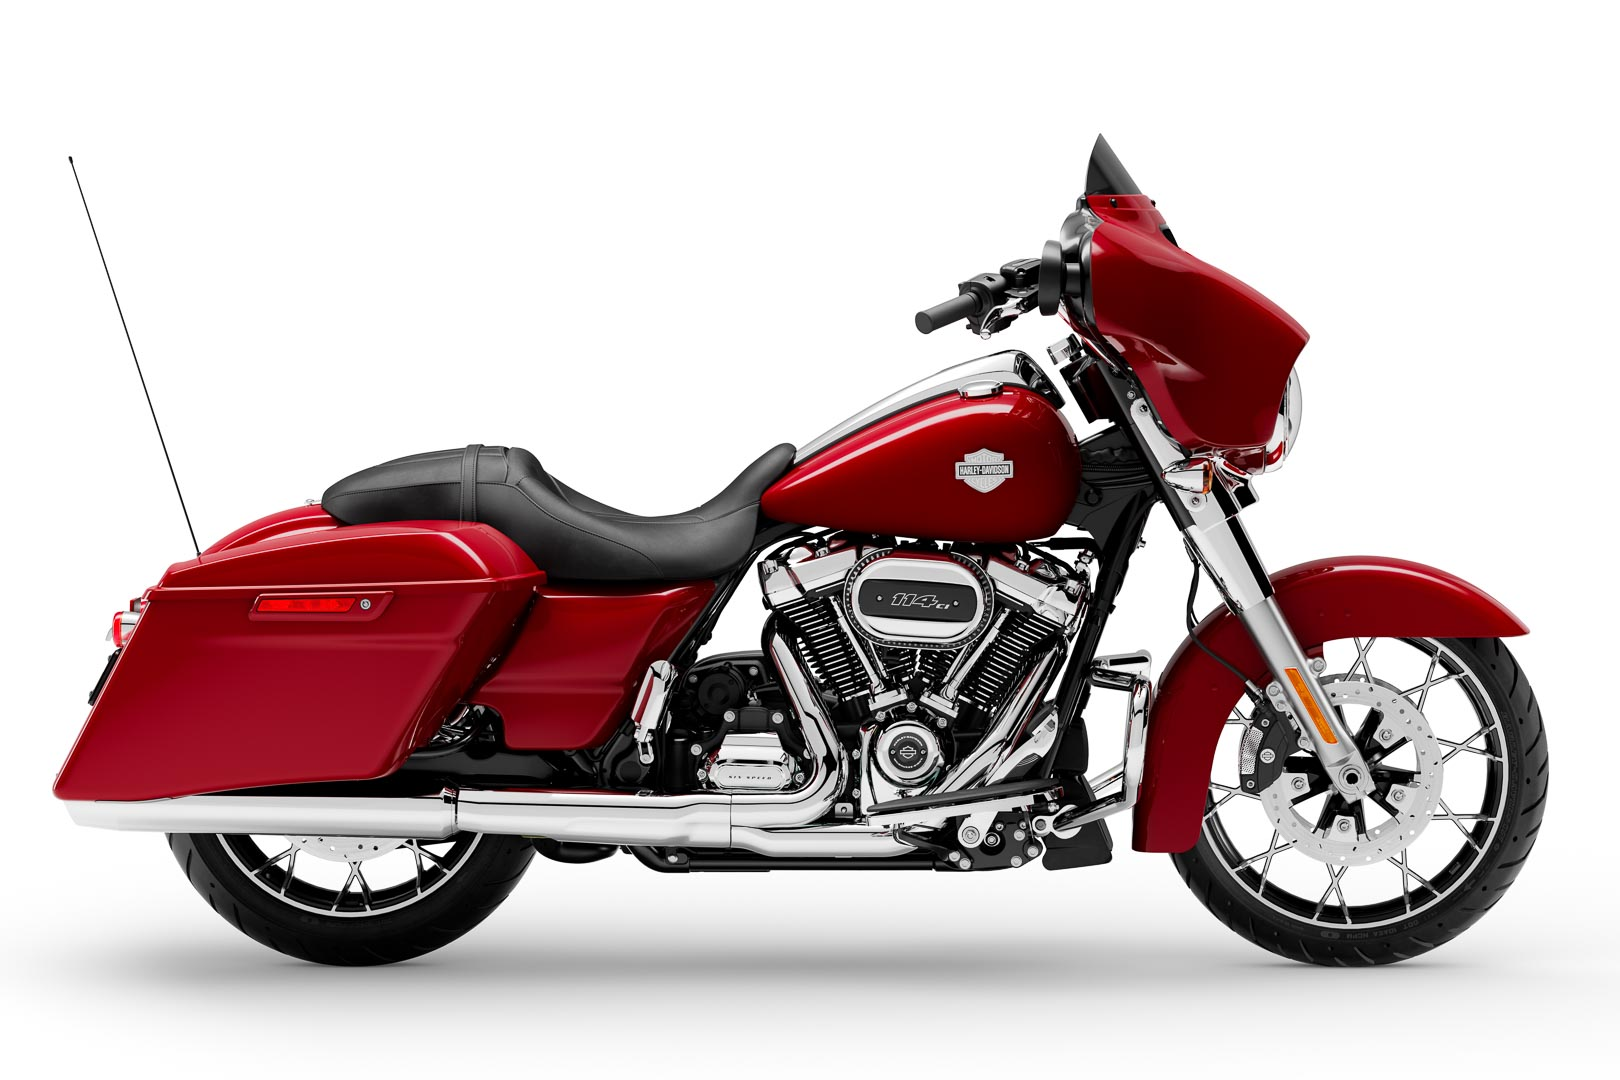 2021 Harley-Davidson Street Glide Special First Look (5 Fast Facts)